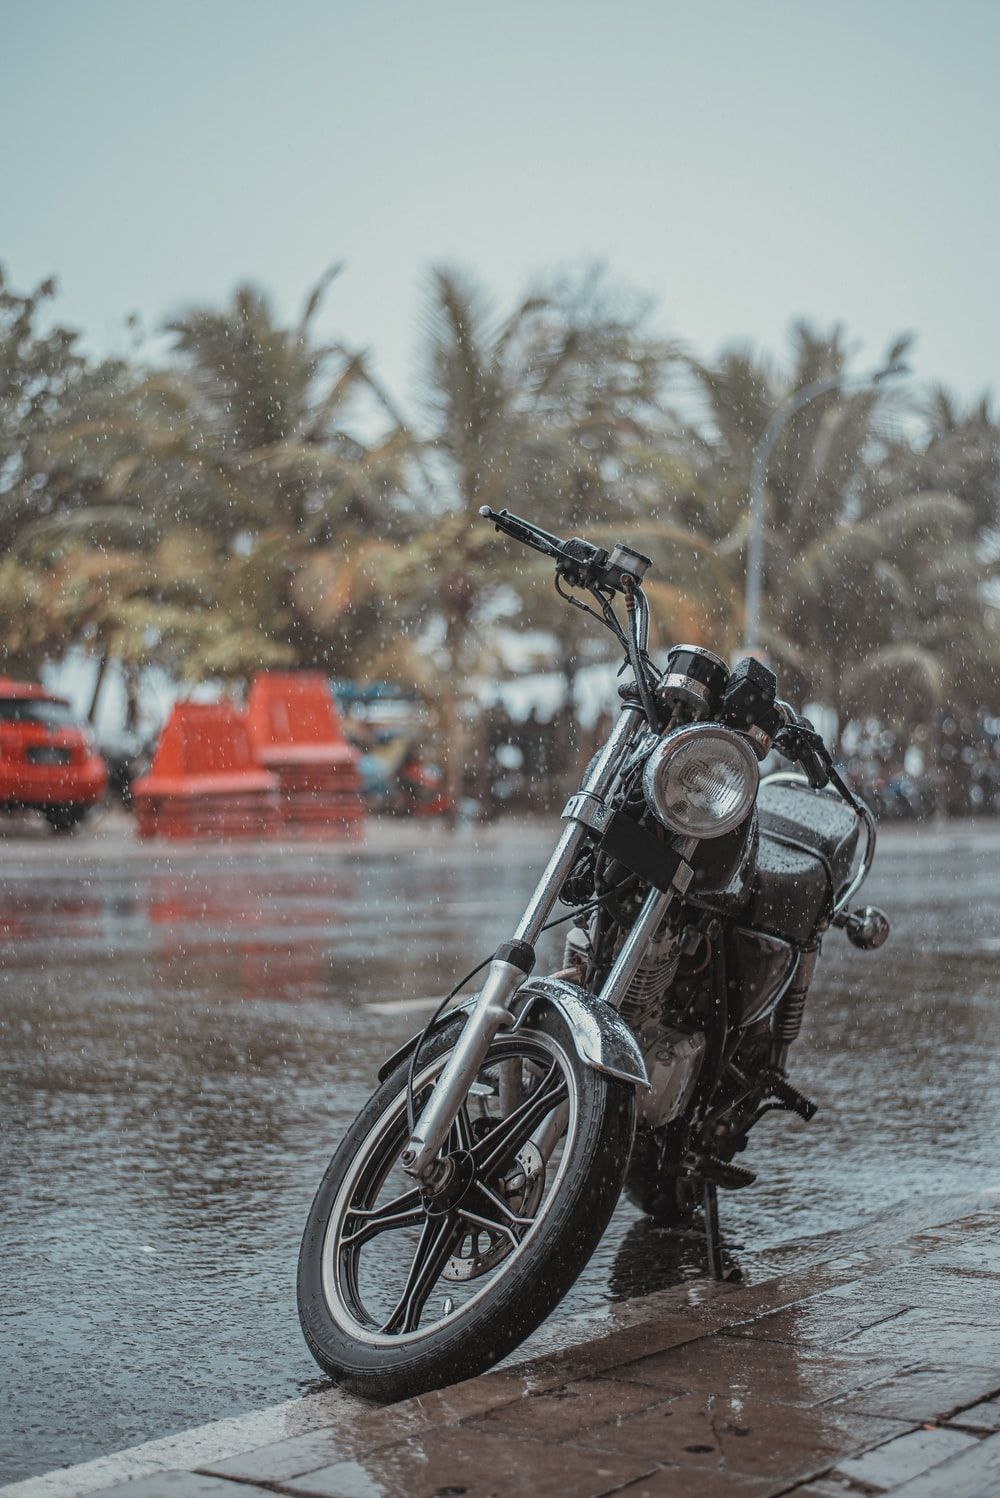 black motorcycle parked beside body of water during daytime